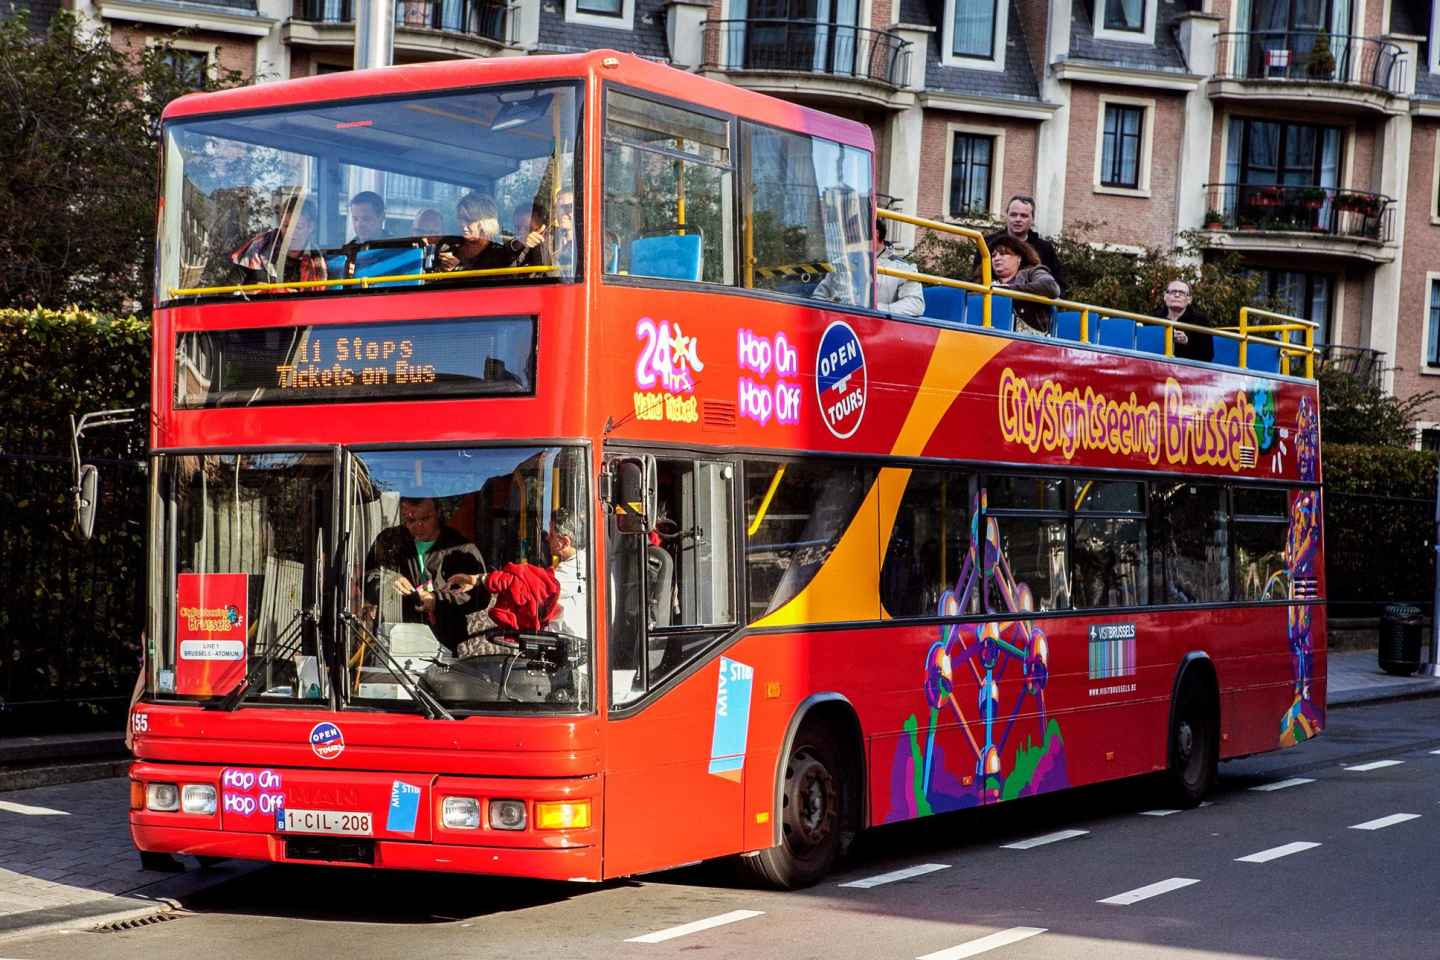 Brüssel: Hop-On/Hop-Off-Sightseeingtour - 24h/48h-Ticket